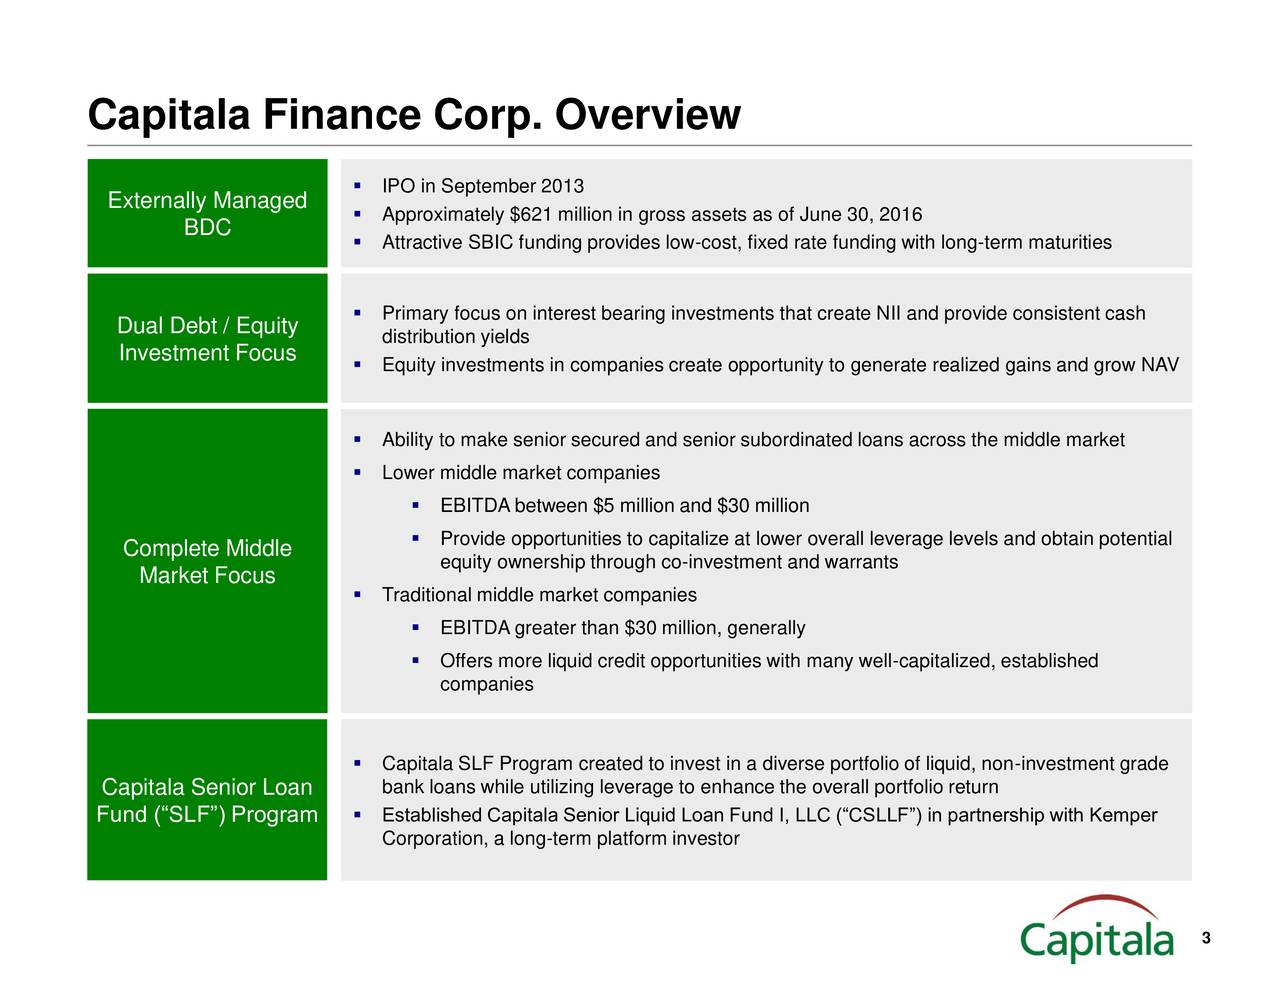 IPO in September 2013 Externally Managed BDC  Approximately $621 million in gross assets as of June 30, 2016 Attractive SBIC funding provides low-cost, fixed rate funding with long-term maturities Dual Debt / Equity  Primary focus on interest bearing investments that create NII and provide consistent cash Investment Focus distribution yields Equity investments in companies create opportunity to generate realized gains and grow NAV Ability to make senior secured and senior subordinated loans across the middle market Lower middle market companies EBITDA between $5 million and $30 million Provide opportunities to capitalize at lower overall leverage levels and obtain potential Complete Middle Market Focus equity ownership through co-investment and warrants Traditional middle market companies EBITDA greater than $30 million, generally Offers more liquid credit opportunities with many well-capitalized, established companies Capitala SLF Program created to invest in a diverse portfolio of liquid, non-investment grade bank loans while utilizing leverage to enhance the overall portfolio return Capitala Senior Loan Fund (SLF) Program  Established Capitala Senior Liquid Loan Fund I, LLC (CSLLF) in partnership with Kemper Corporation, a long-term platform investor 3